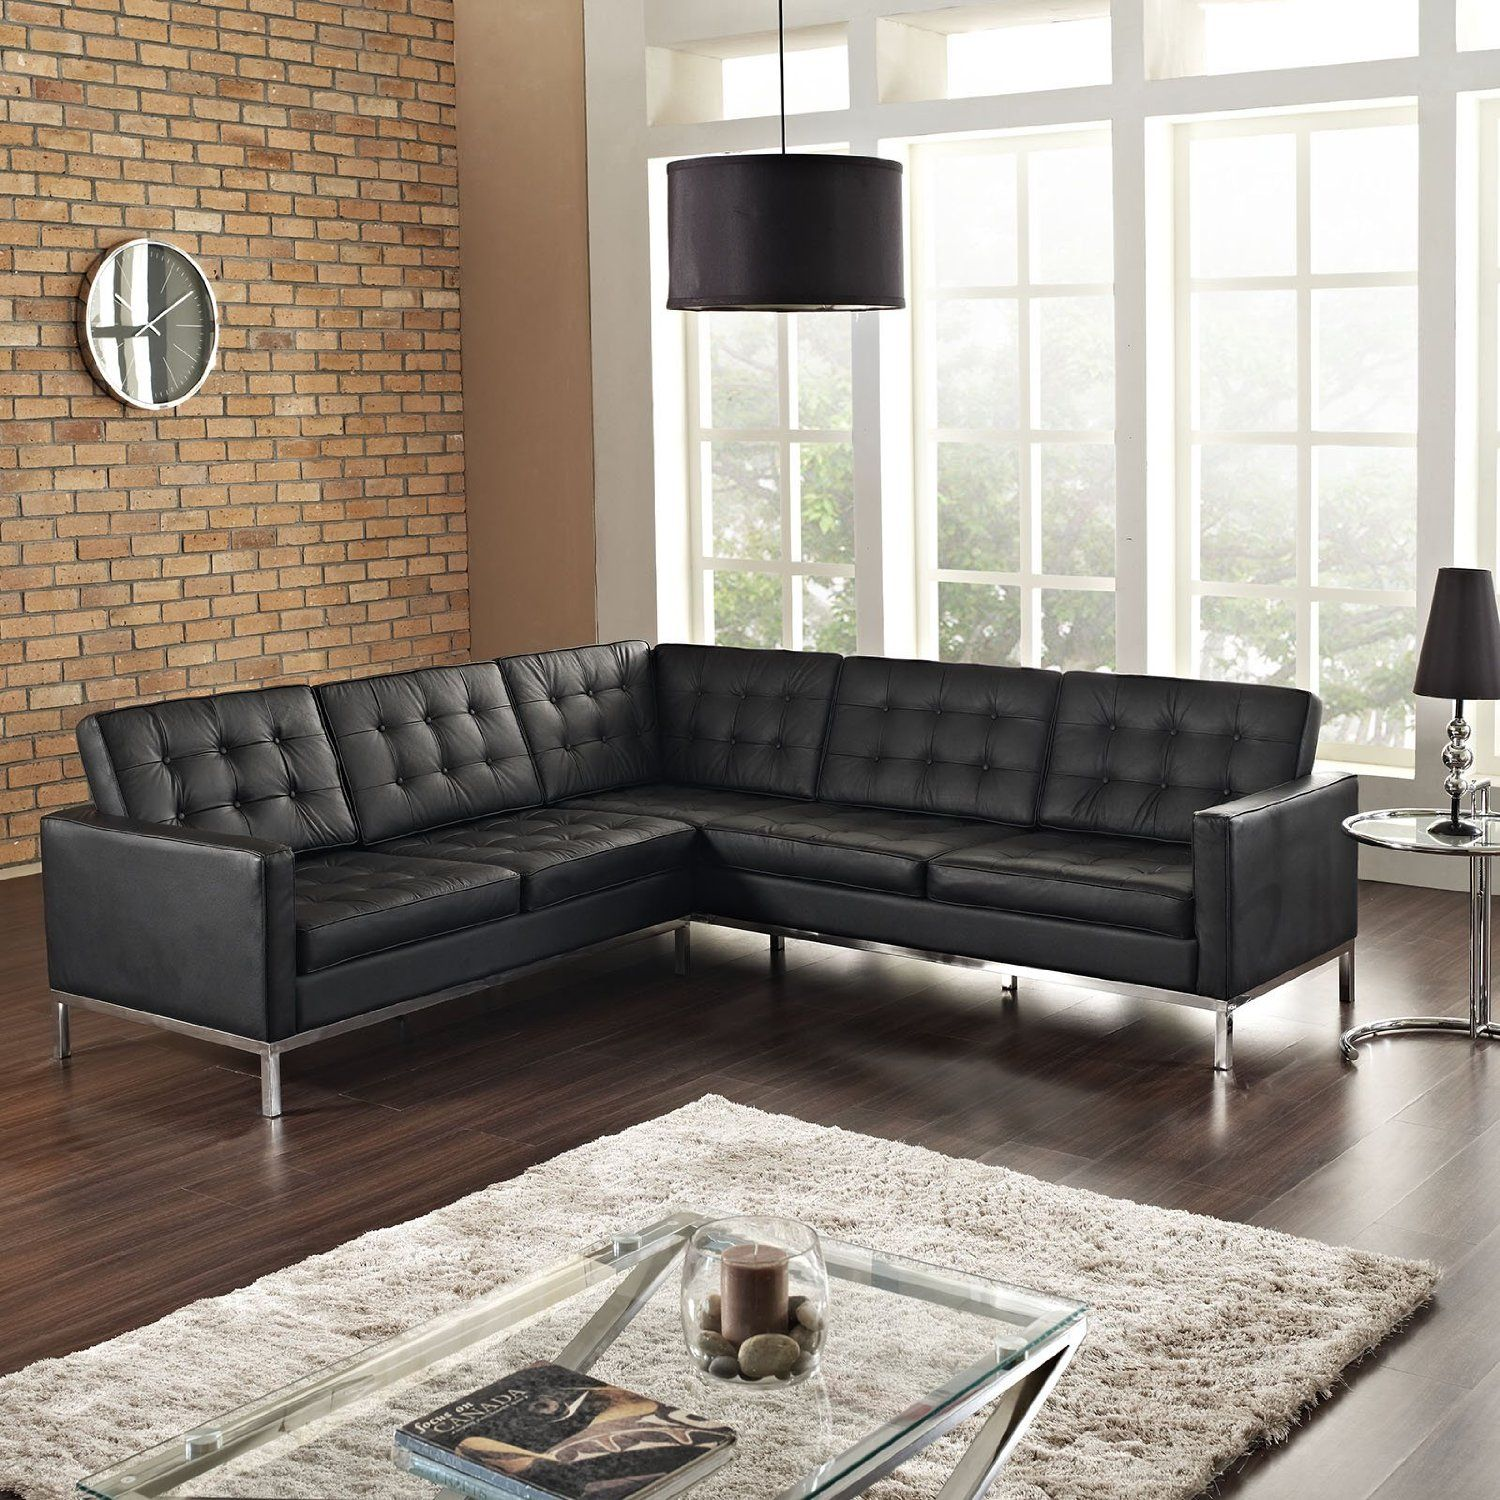 Pretty Black Semi Leather Sectional L Shaped Couch 2 Pieces With